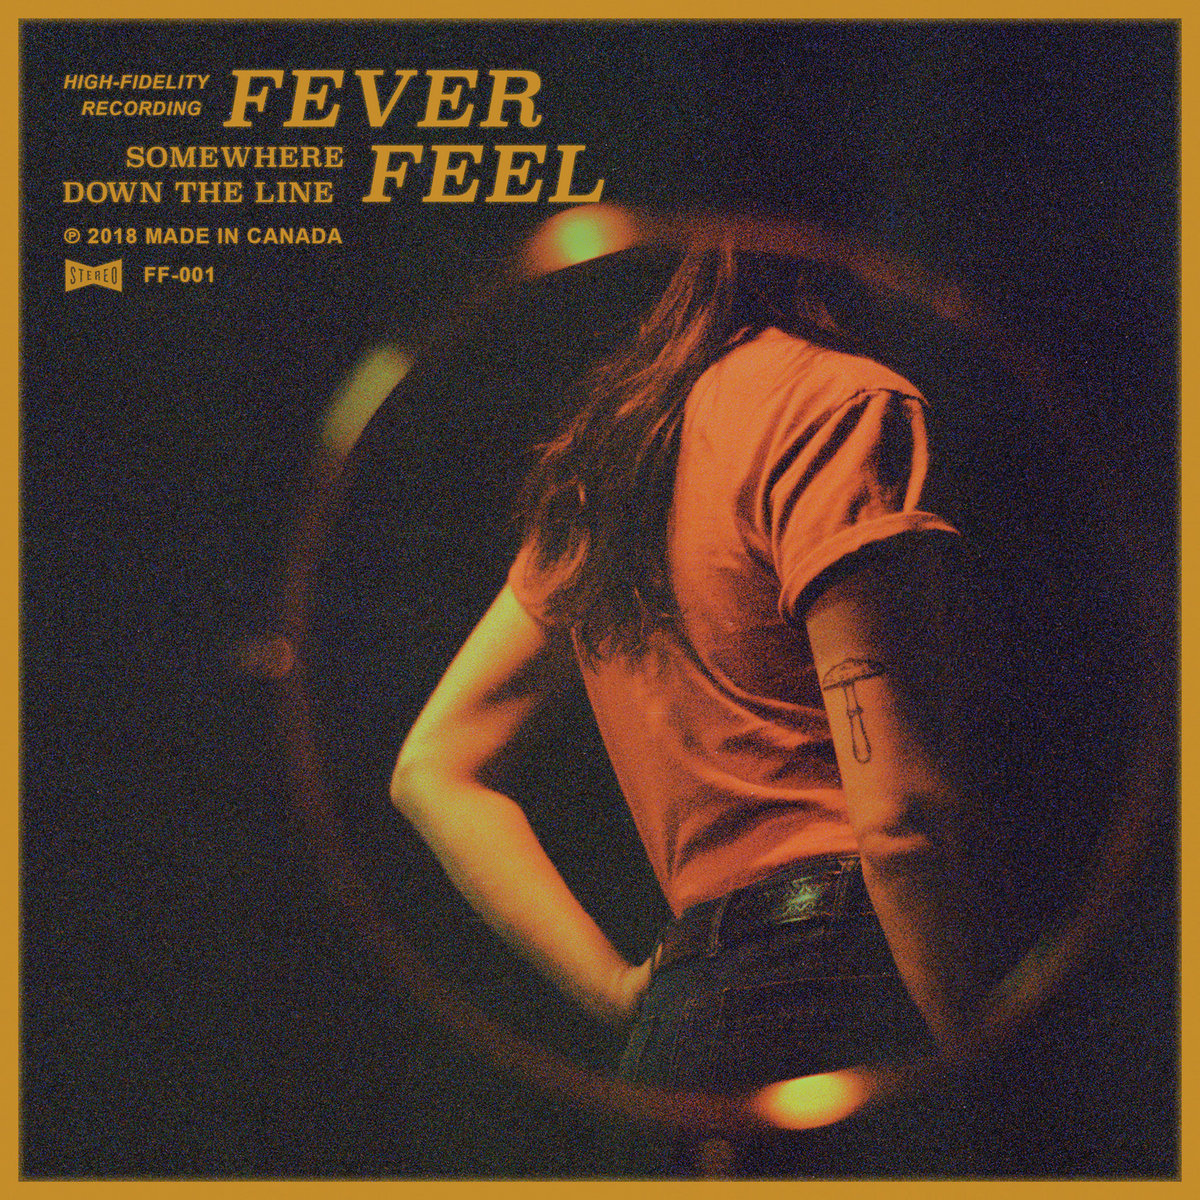 Image result for fever feel somewhere down the line